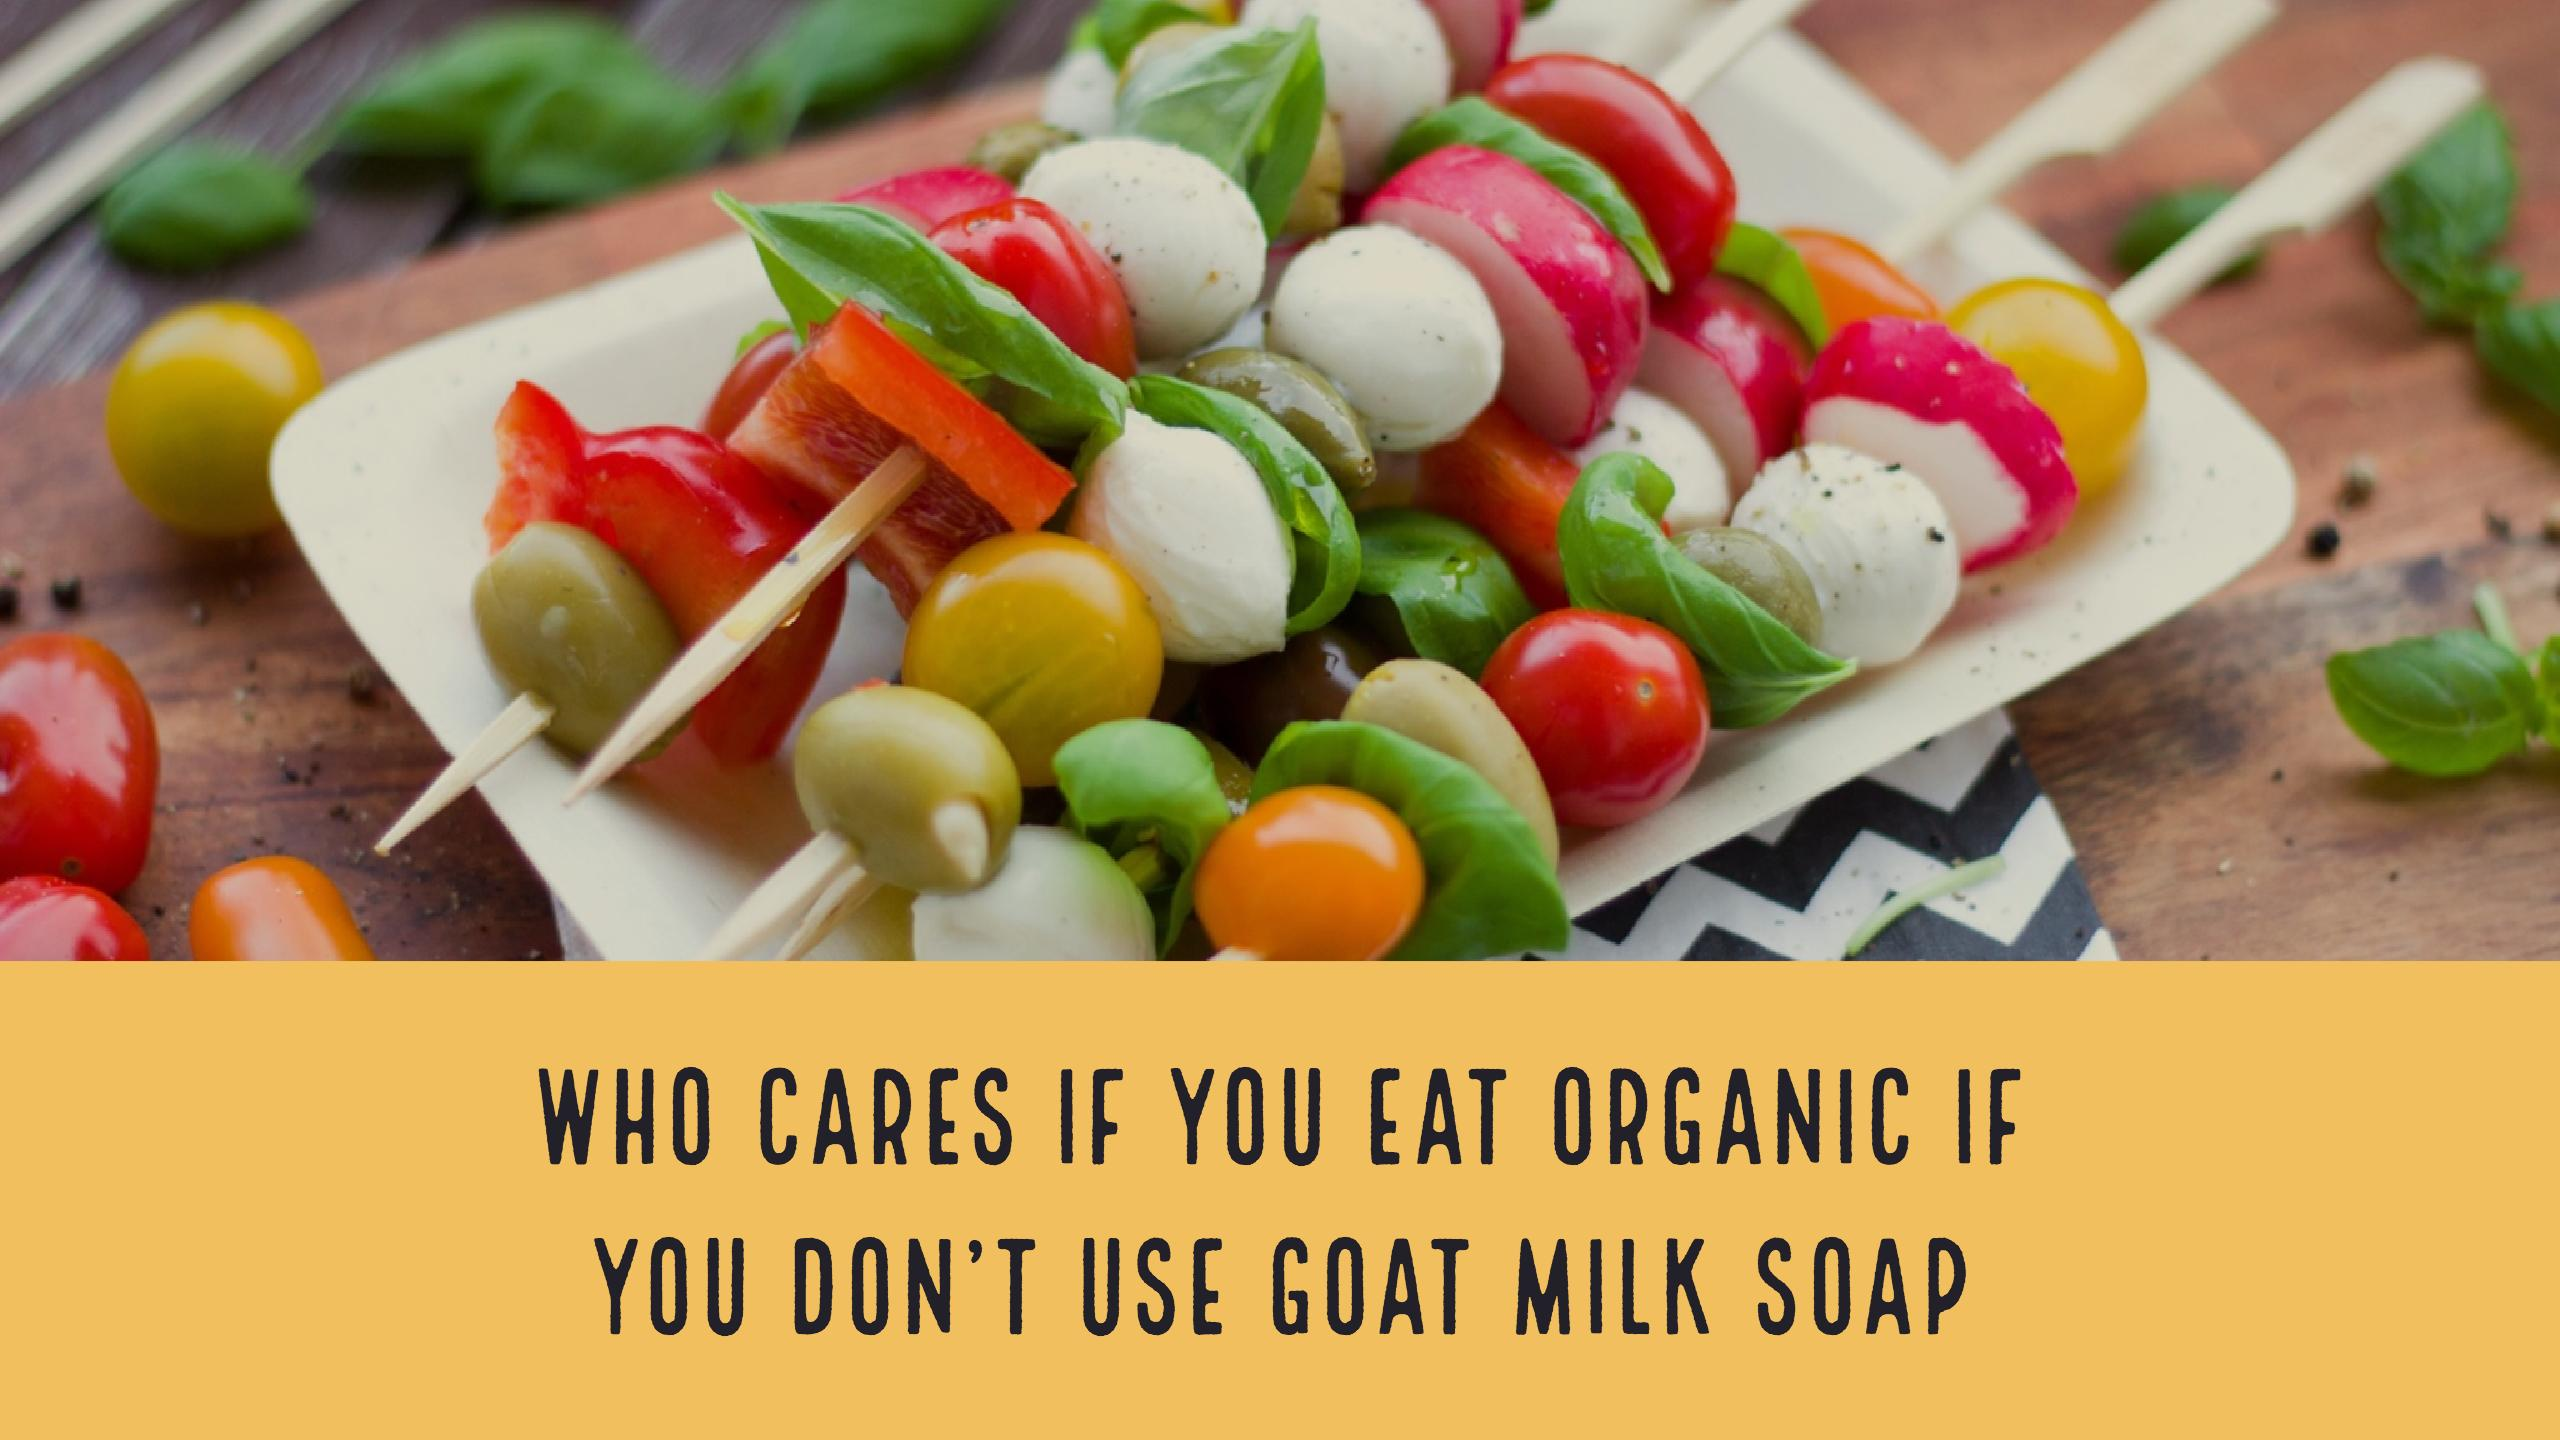 Who Cares If You Eat Organic If You Don't Use Goat Milk Soap